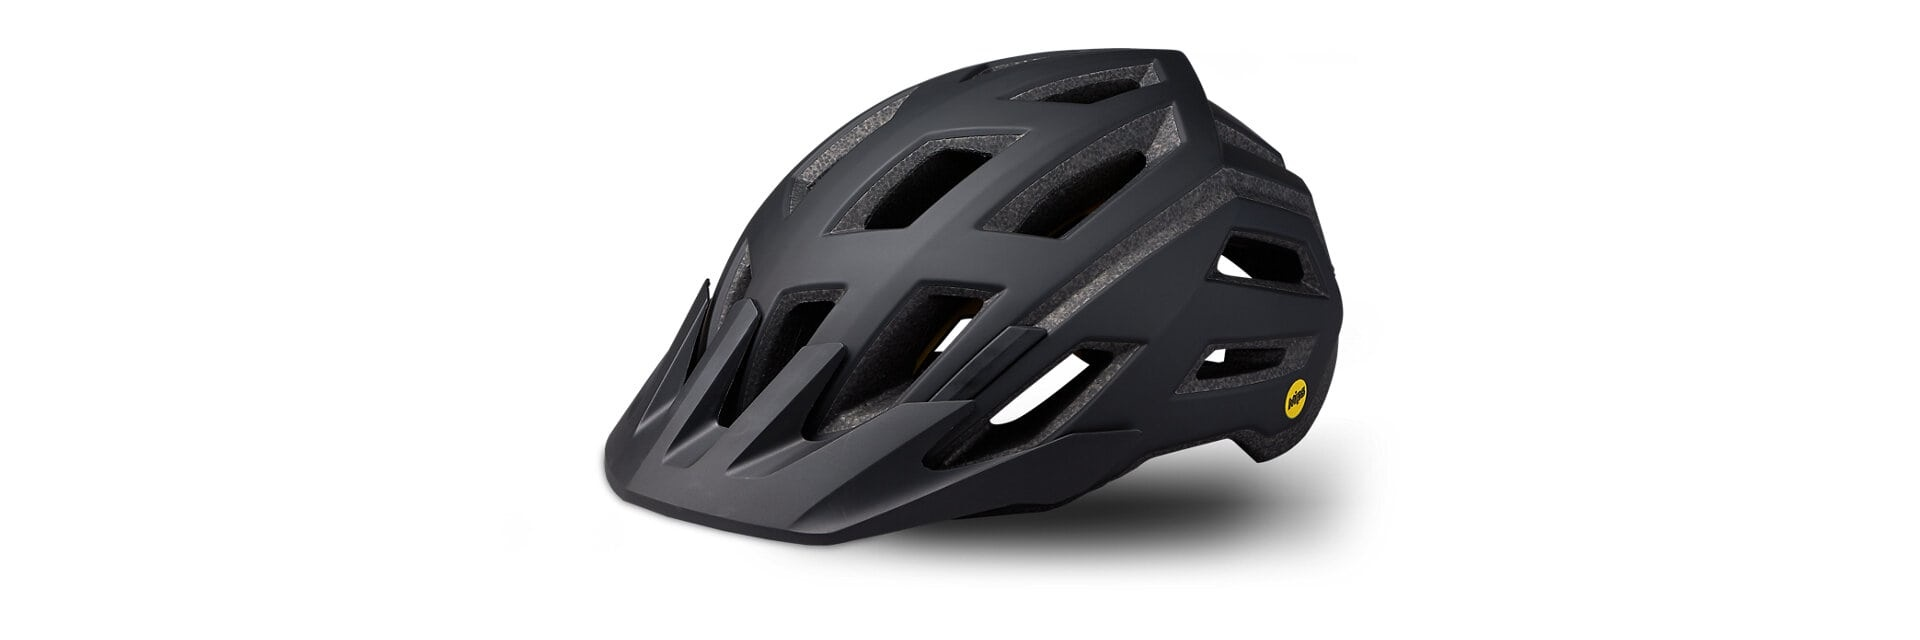 Specialized TACTIC MIPS